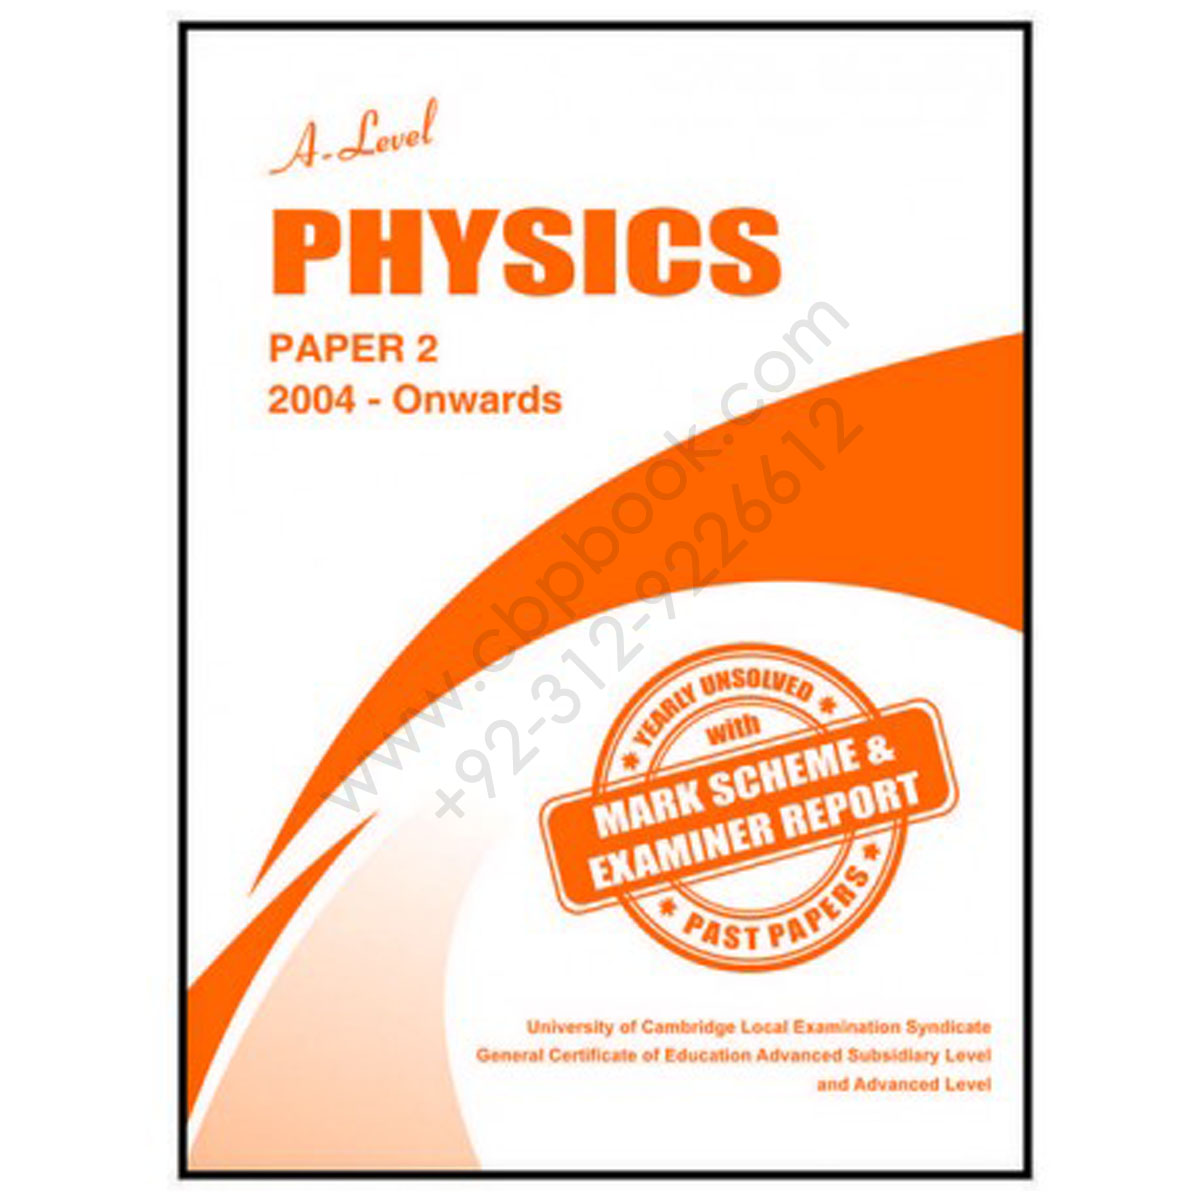 physics paper 2 Paper 3 is the same format as paper 2 but the questions are on the options refer to the section on paper 2 for comments on the type of question and marking as it is the samethe paper is split into 2 sections:section 1 is a data analysis question plus some short questions related to the required practicals.